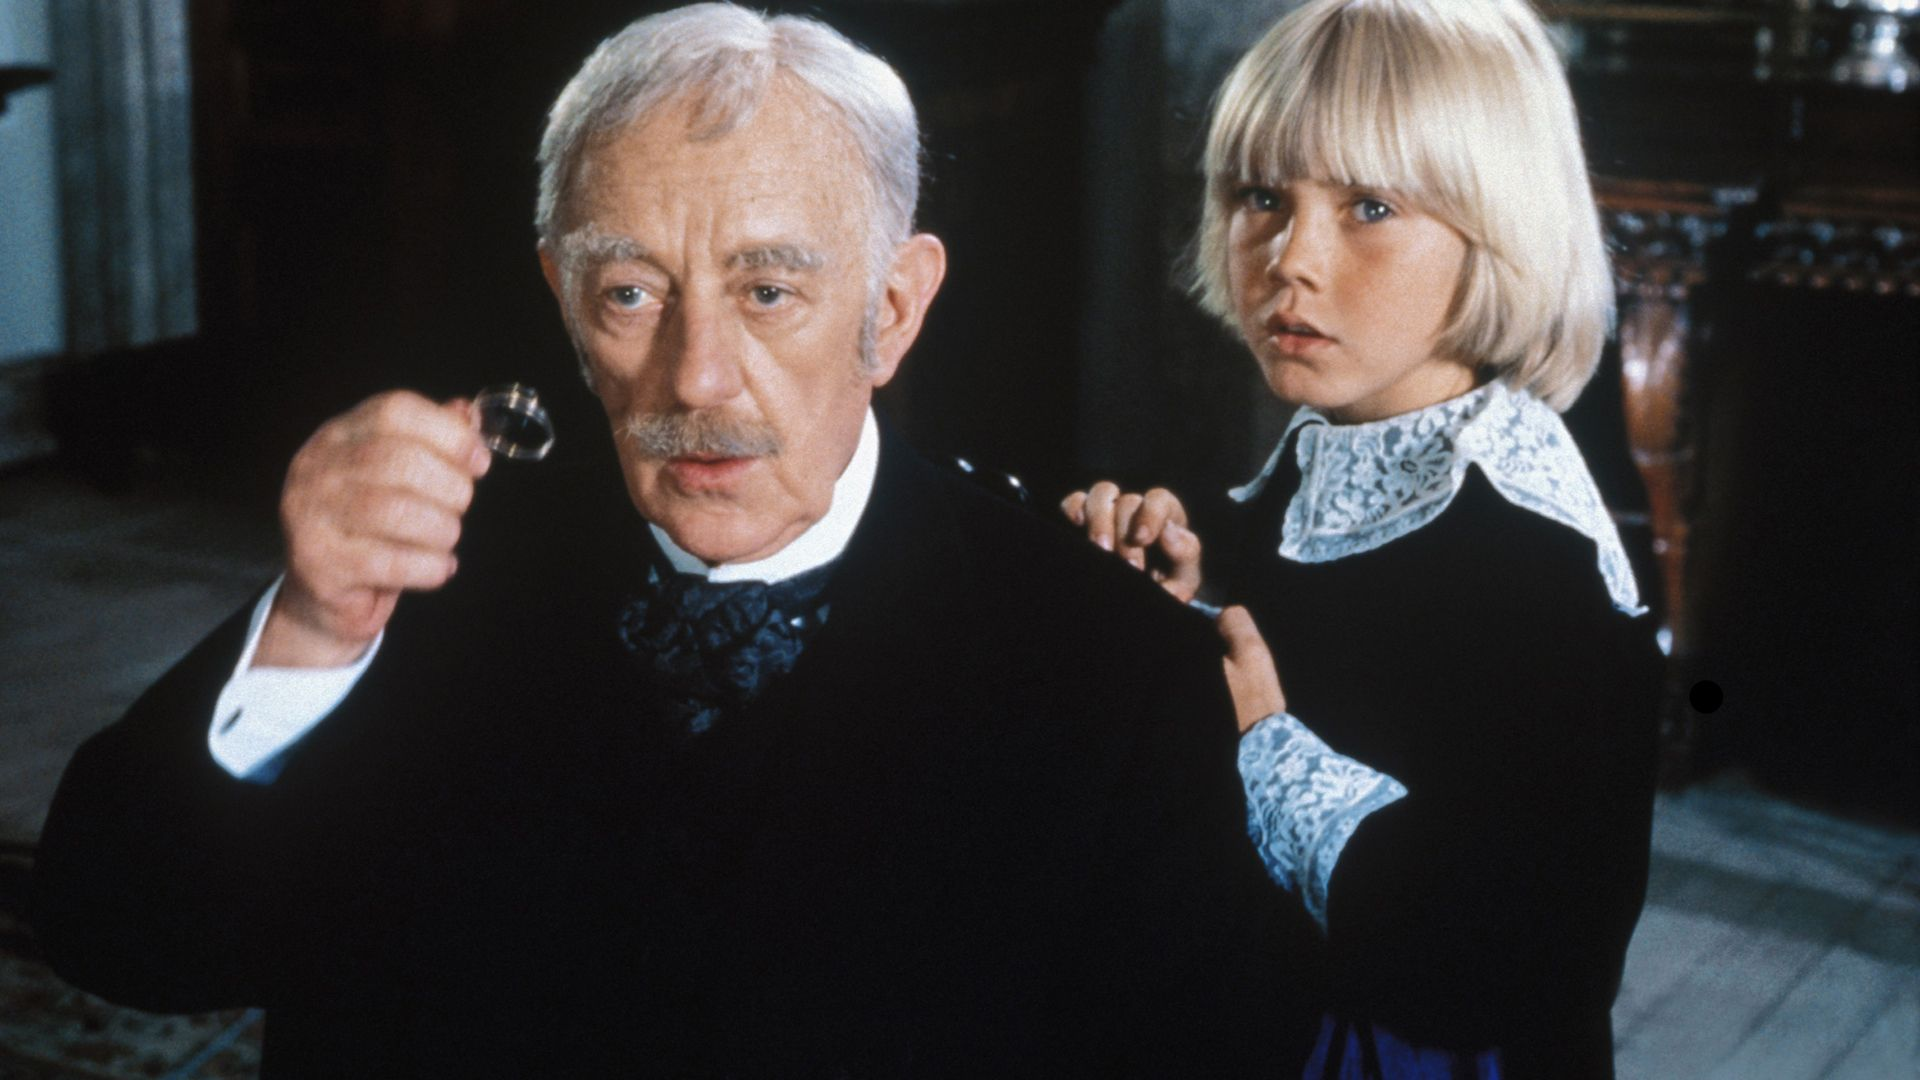 Little Lord Fauntleroy 1980 Stream